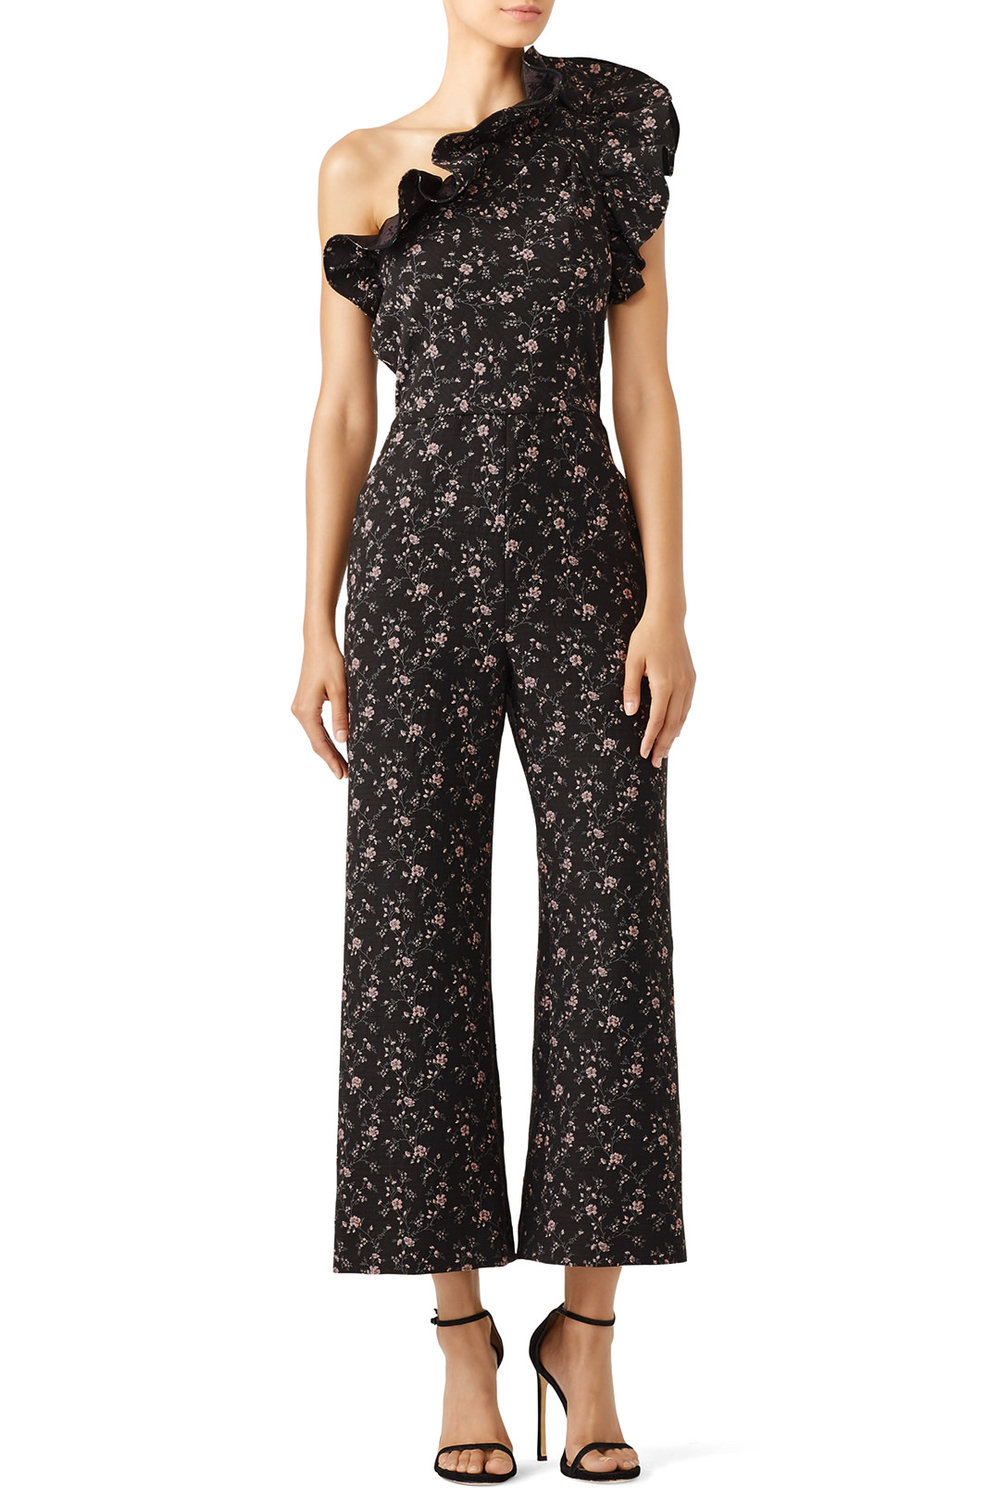 Get this in your life...now! Click the image to shop it from Rent the Runway. For reference, I wore a size 8.